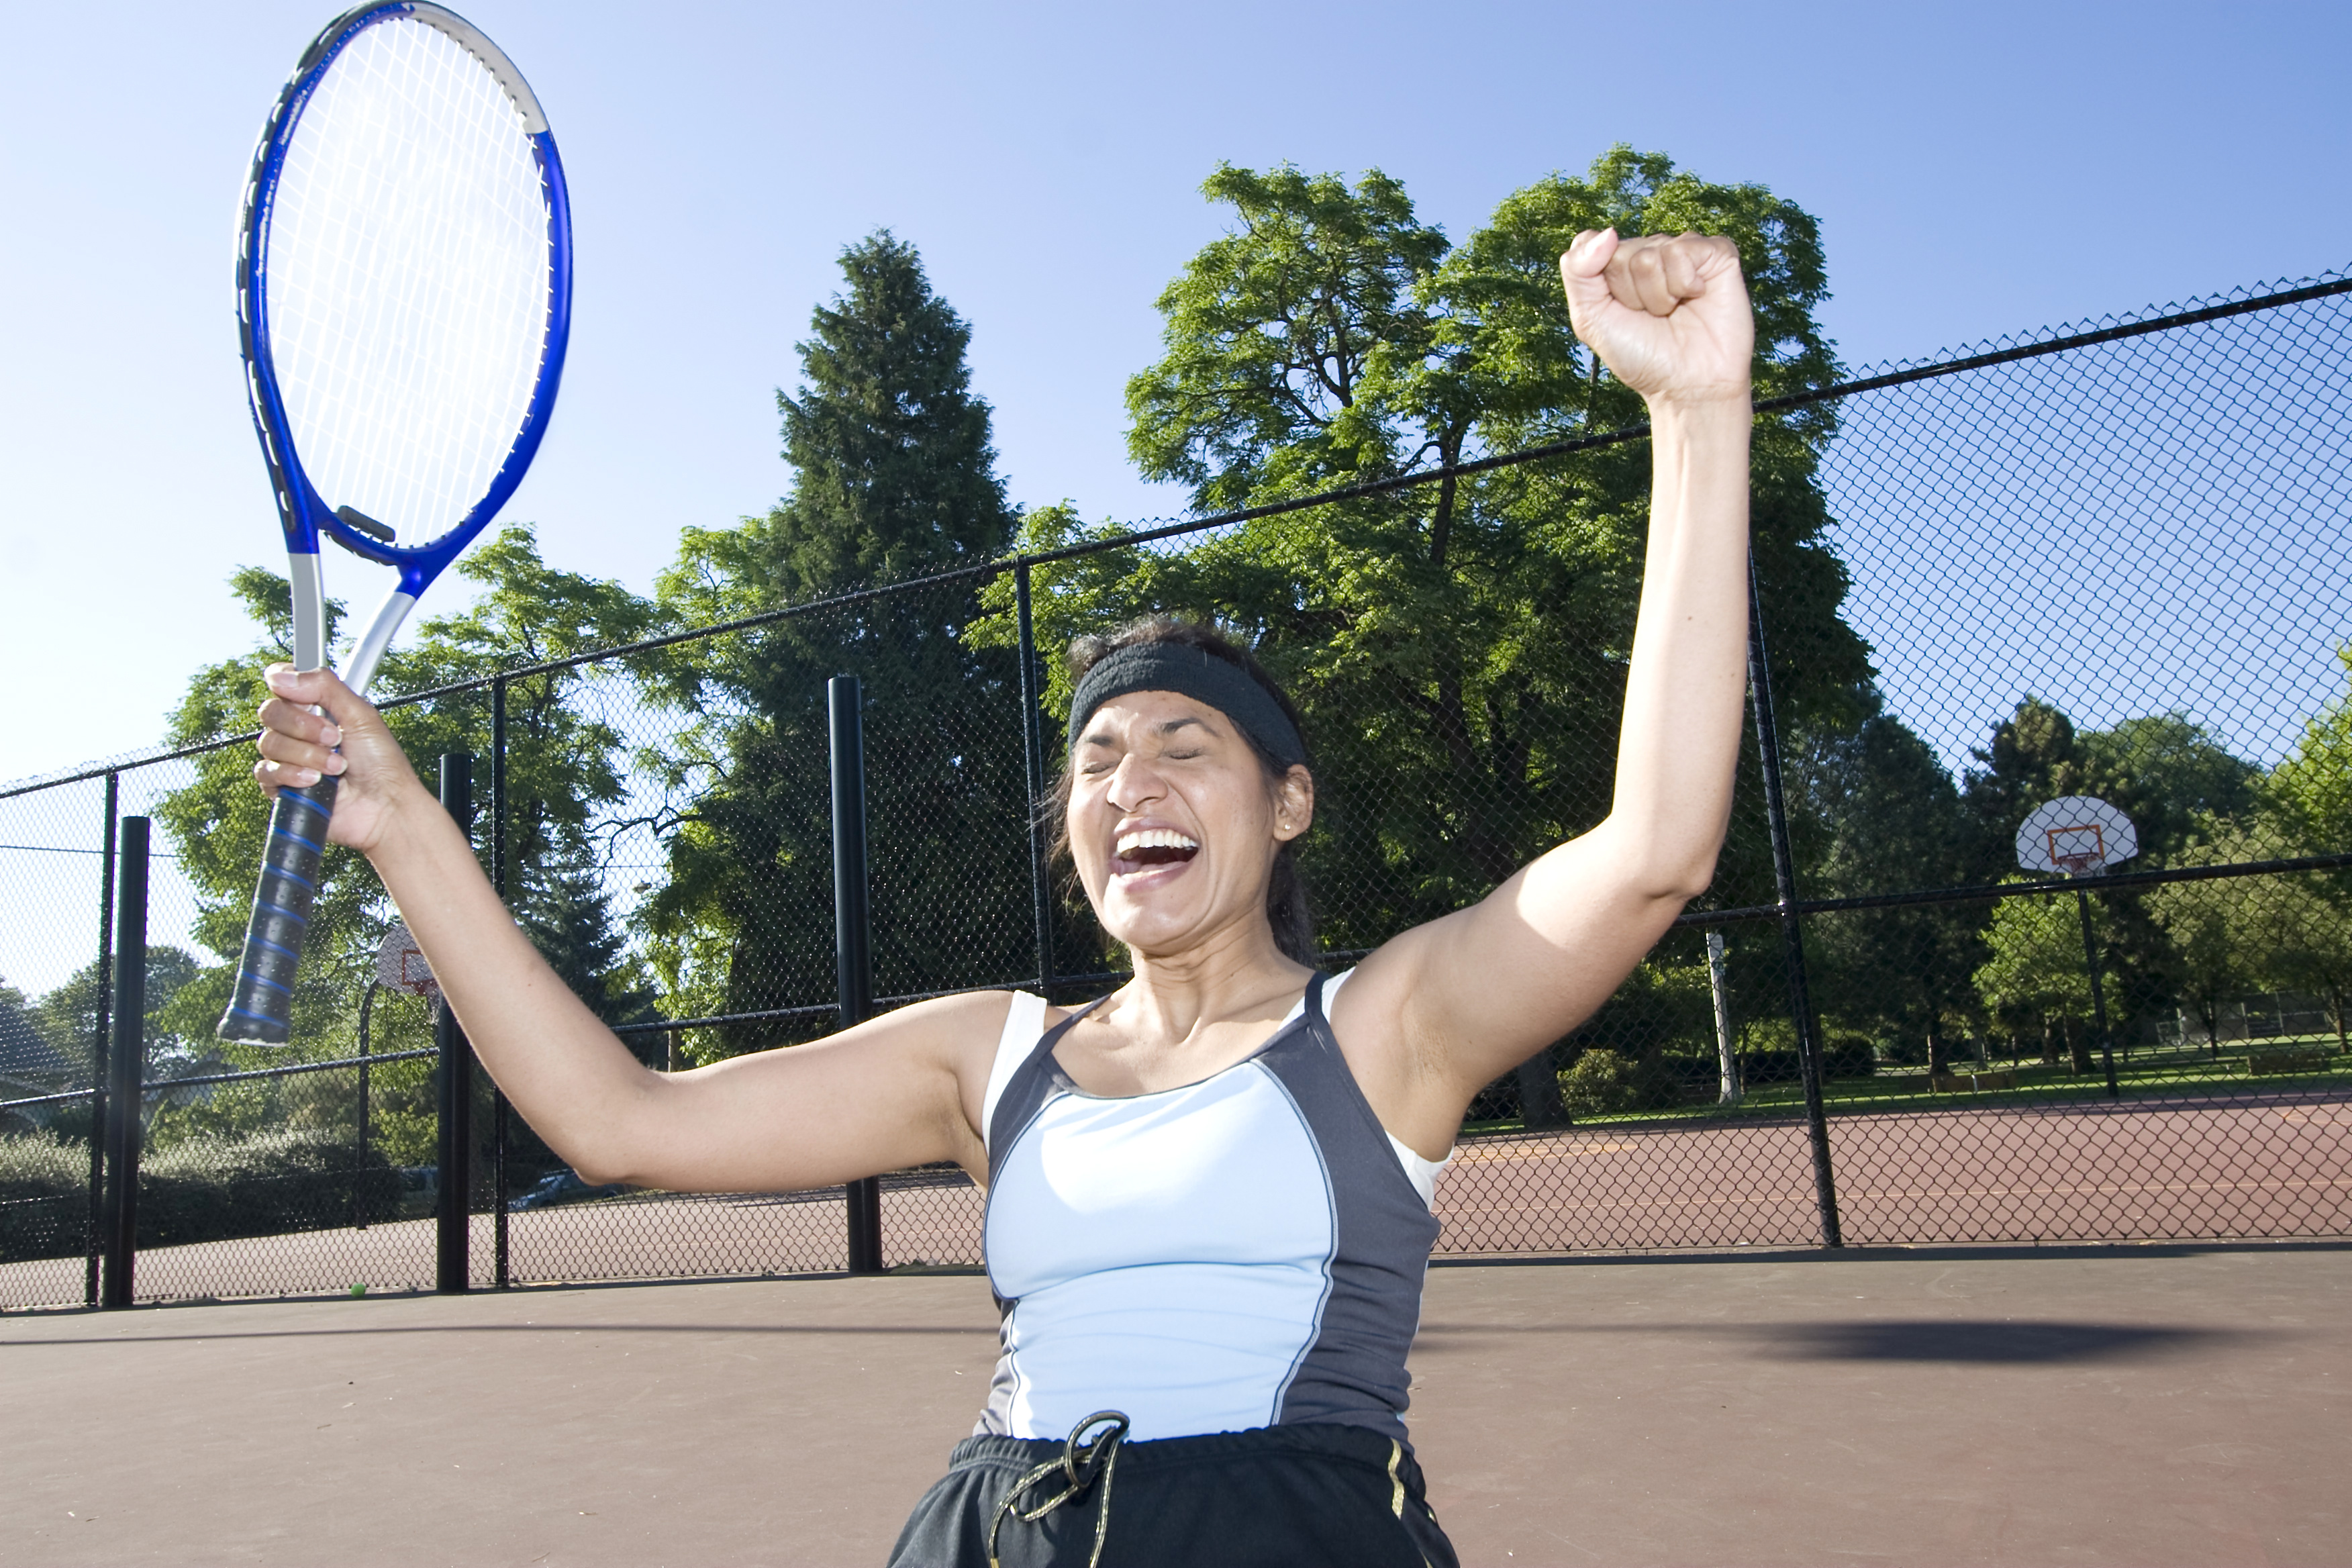 Tennis Player Smiling With Hands Up In Celebration. Horizontal